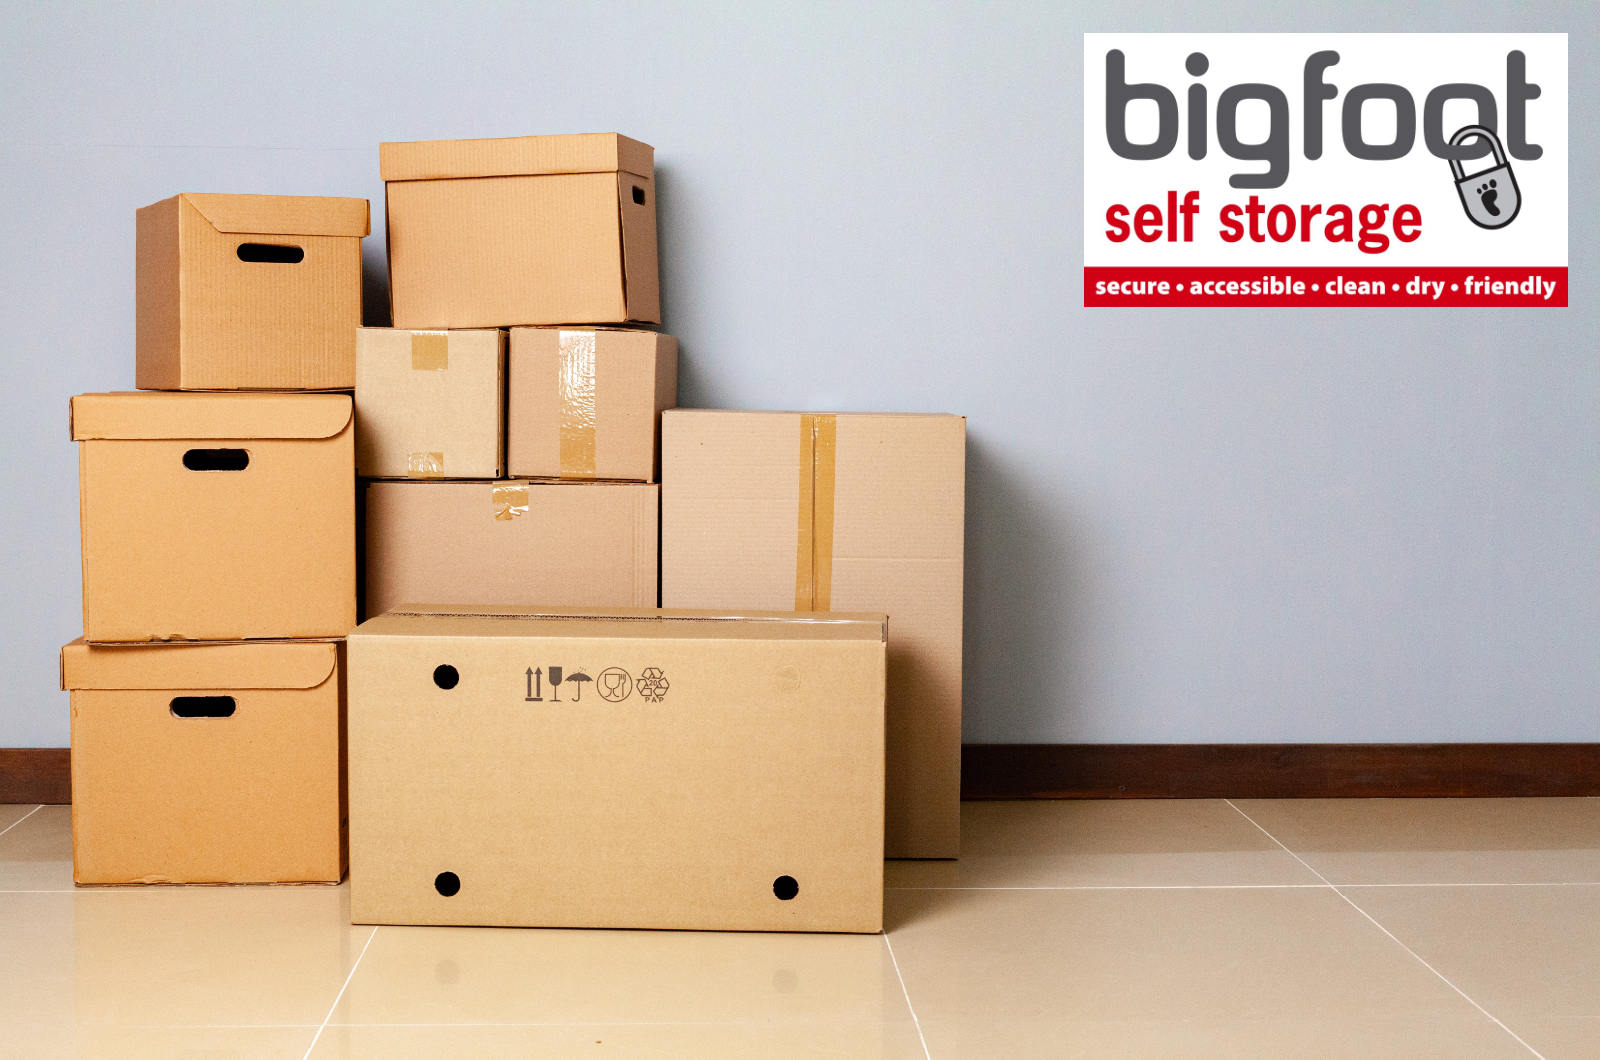 Benefits of self storage for businesses